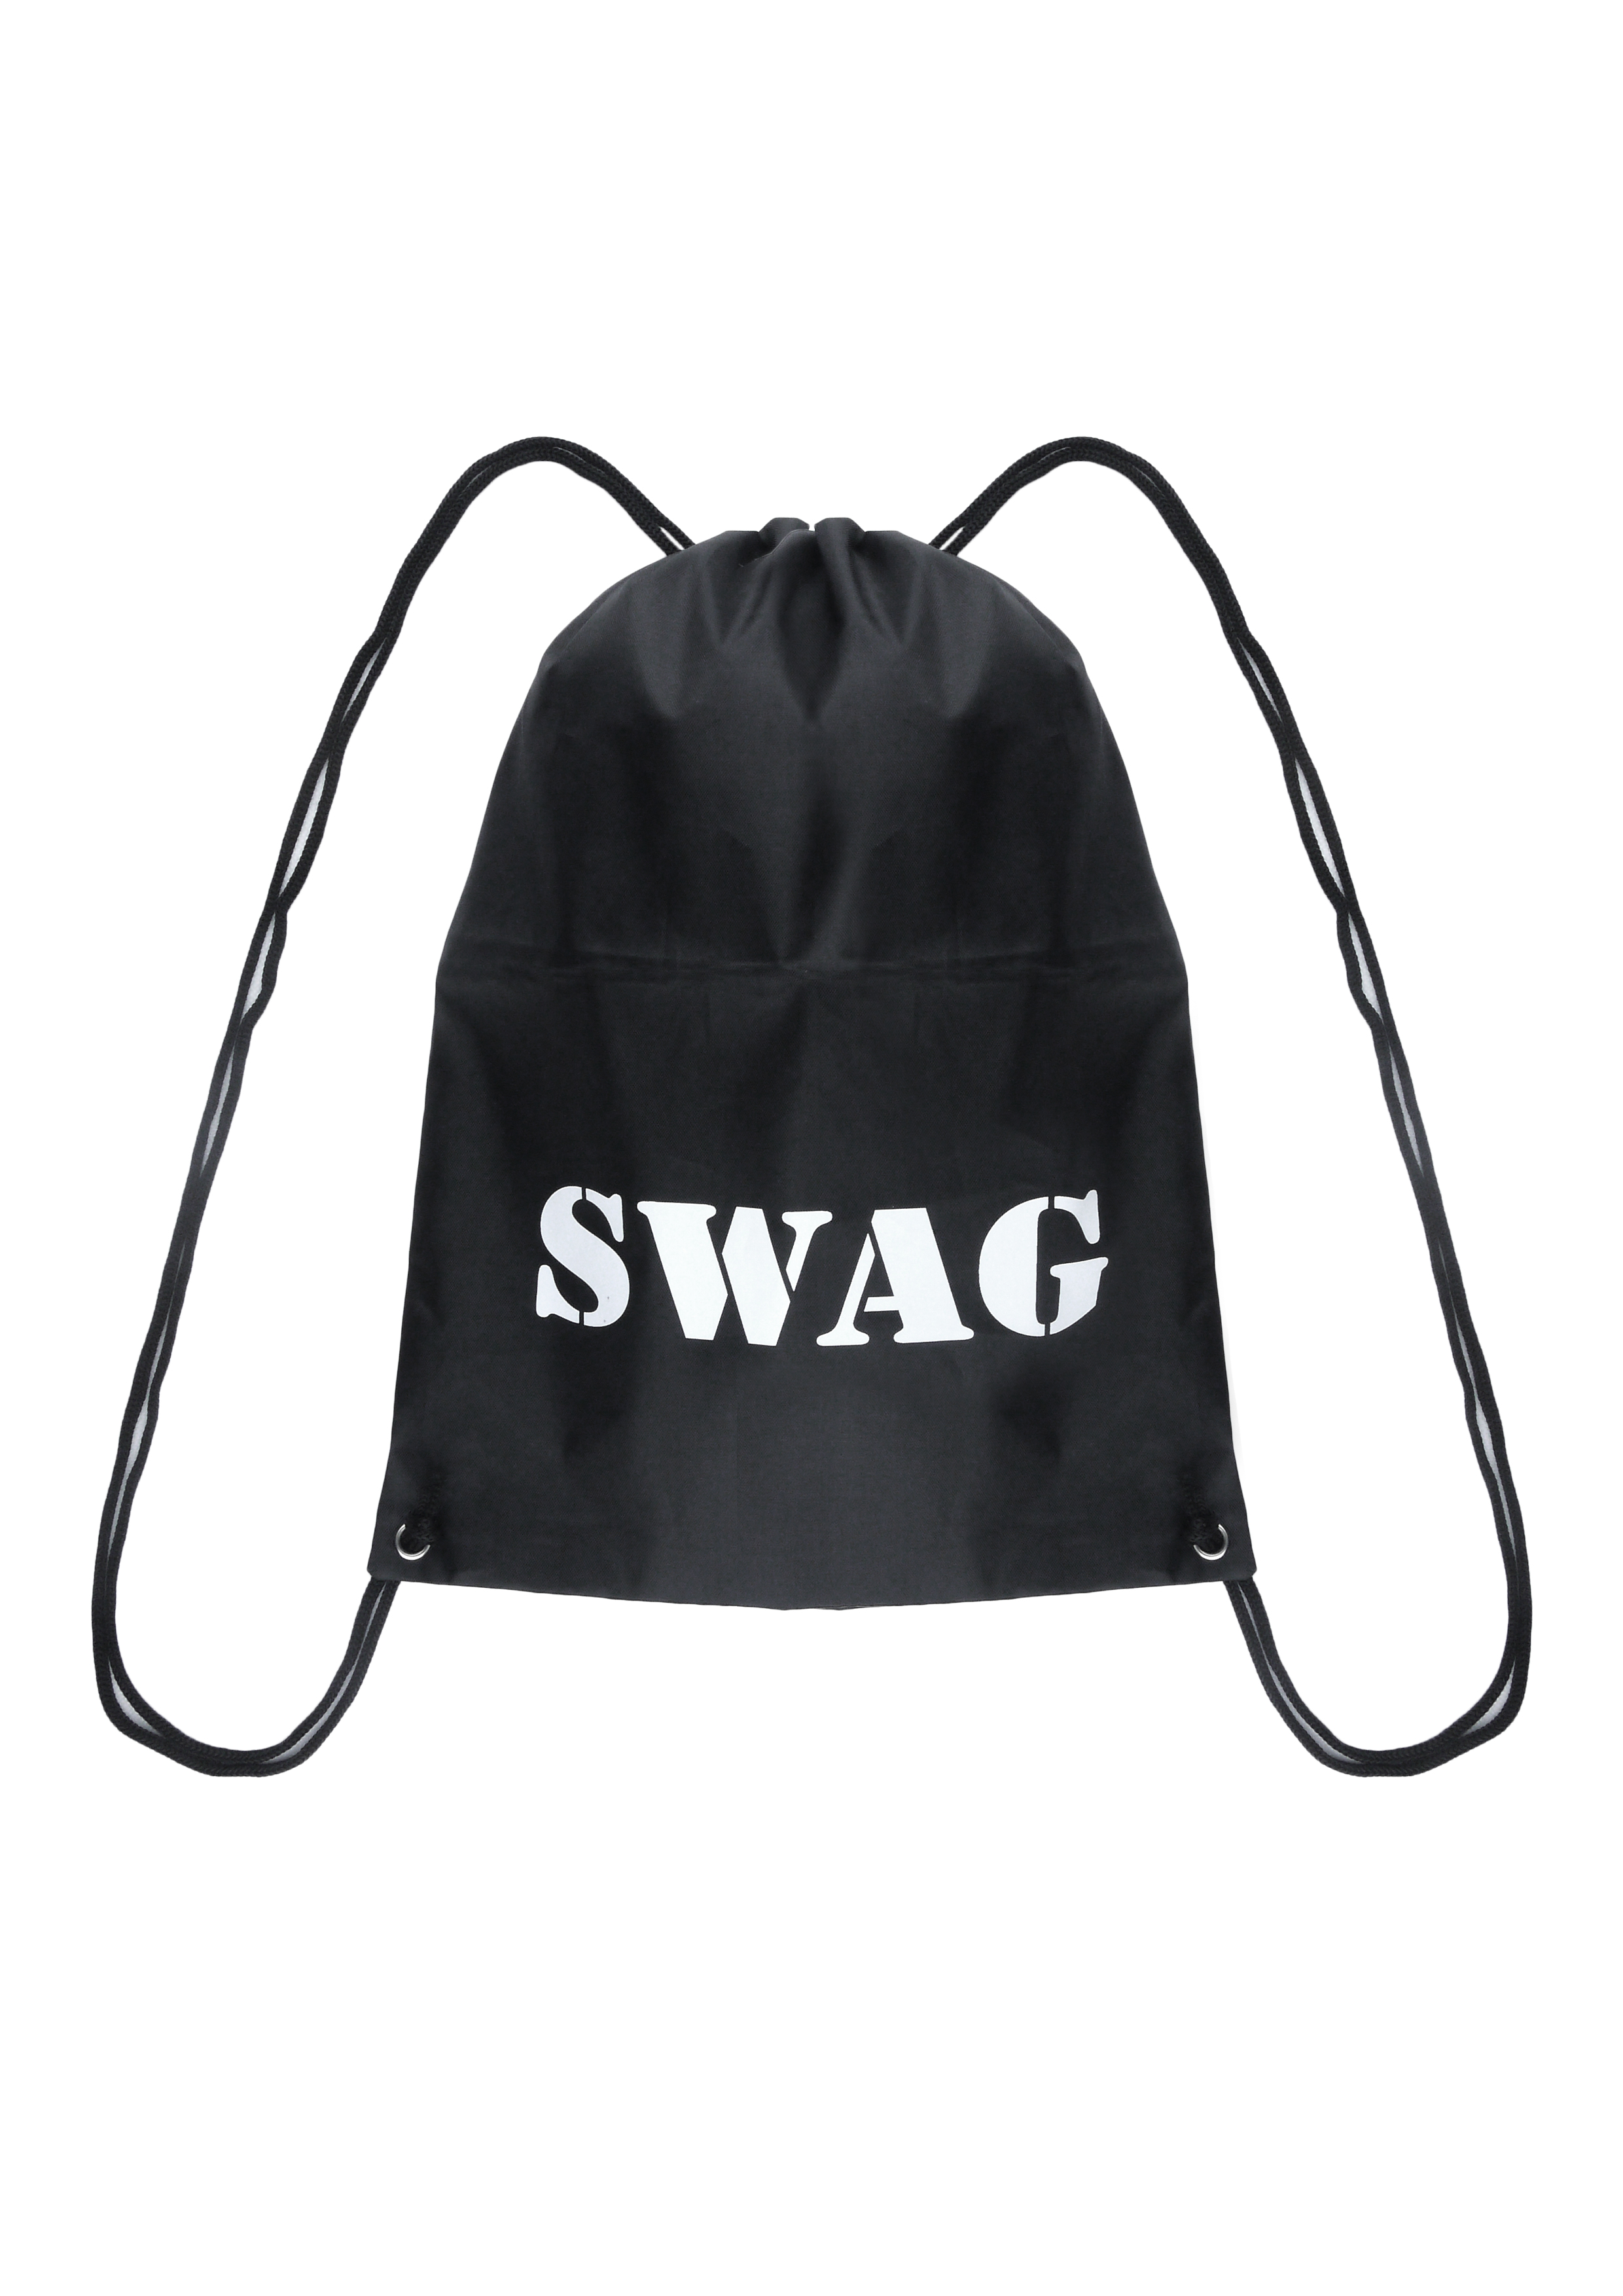 Bag Swag Black 40 X 30cm